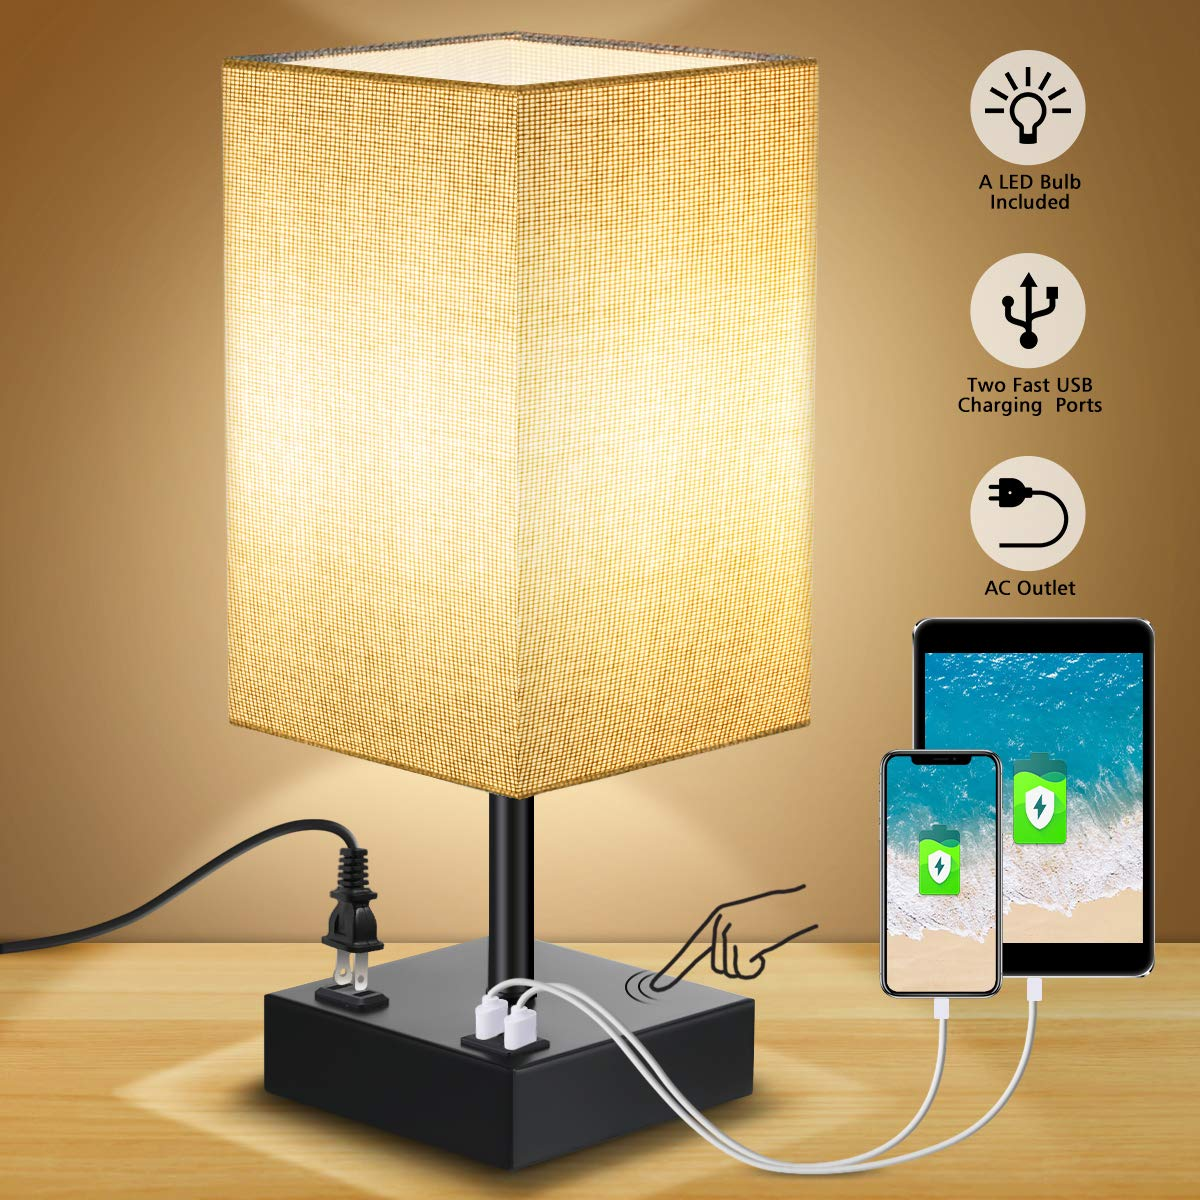 Touch Control Table Lamp, SOLMORE 3 Way Dimmable Bedside Nightstand Lamp, with AC Outlet 2 Charging USB Ports Fabric Shade Modern Lamp for Bedroom Office Living Room,60W Equivalent LED Bulb Included